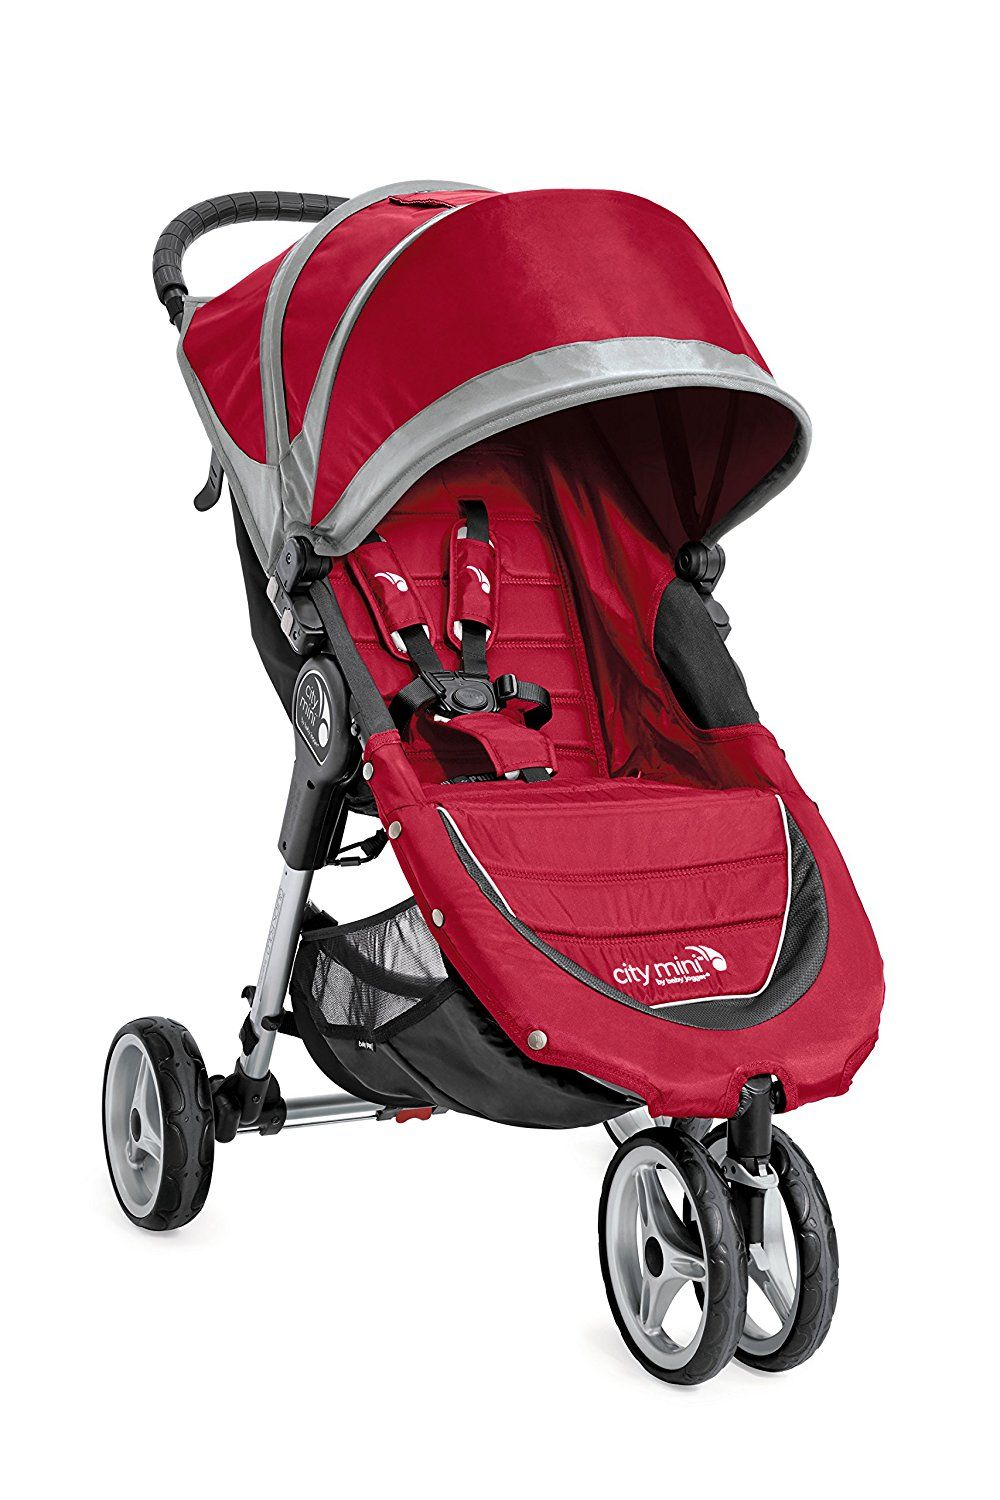 graco stroller and car seat pricegraco stroller and